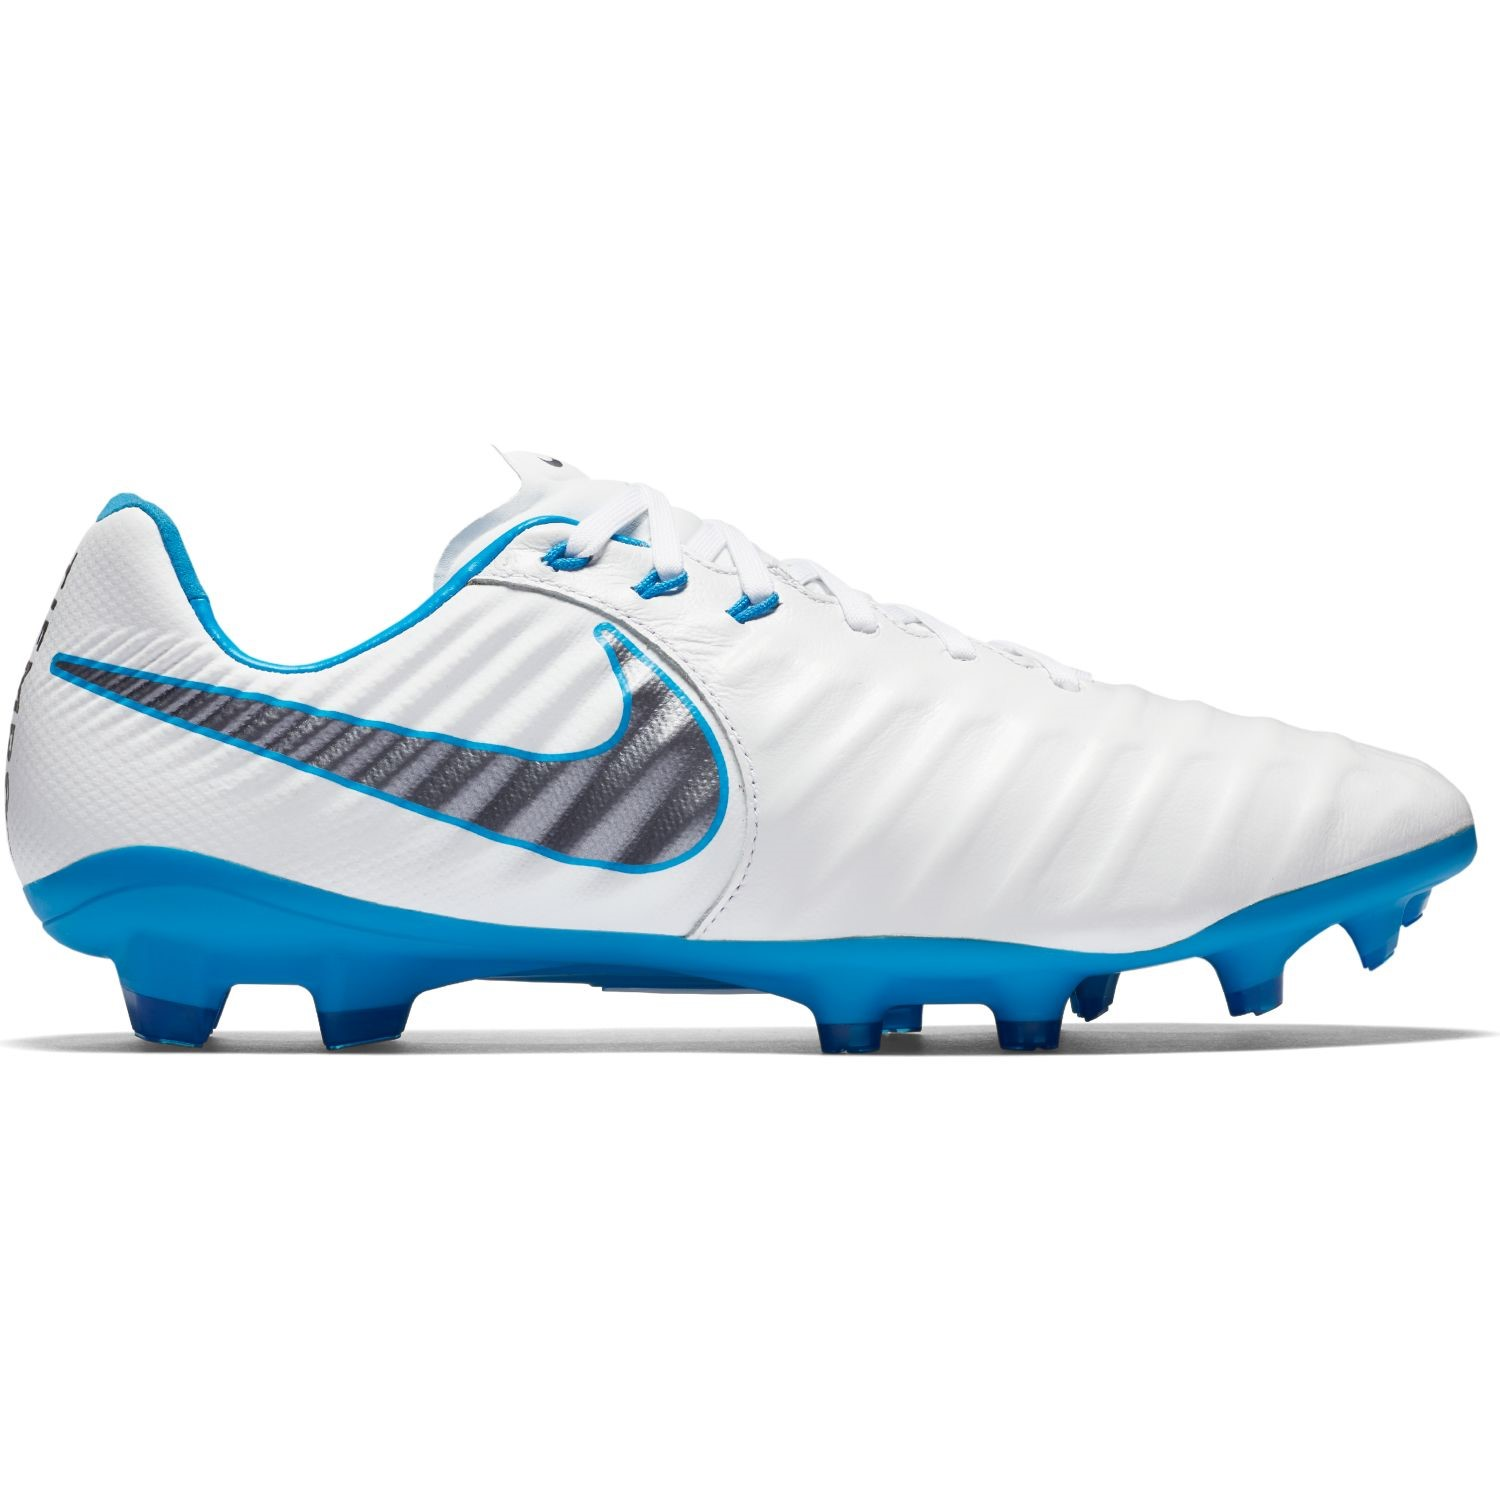 698b196f8 Nike Tiempo Legend VII Pro FG - Mens Football Boots - White Blue Hero